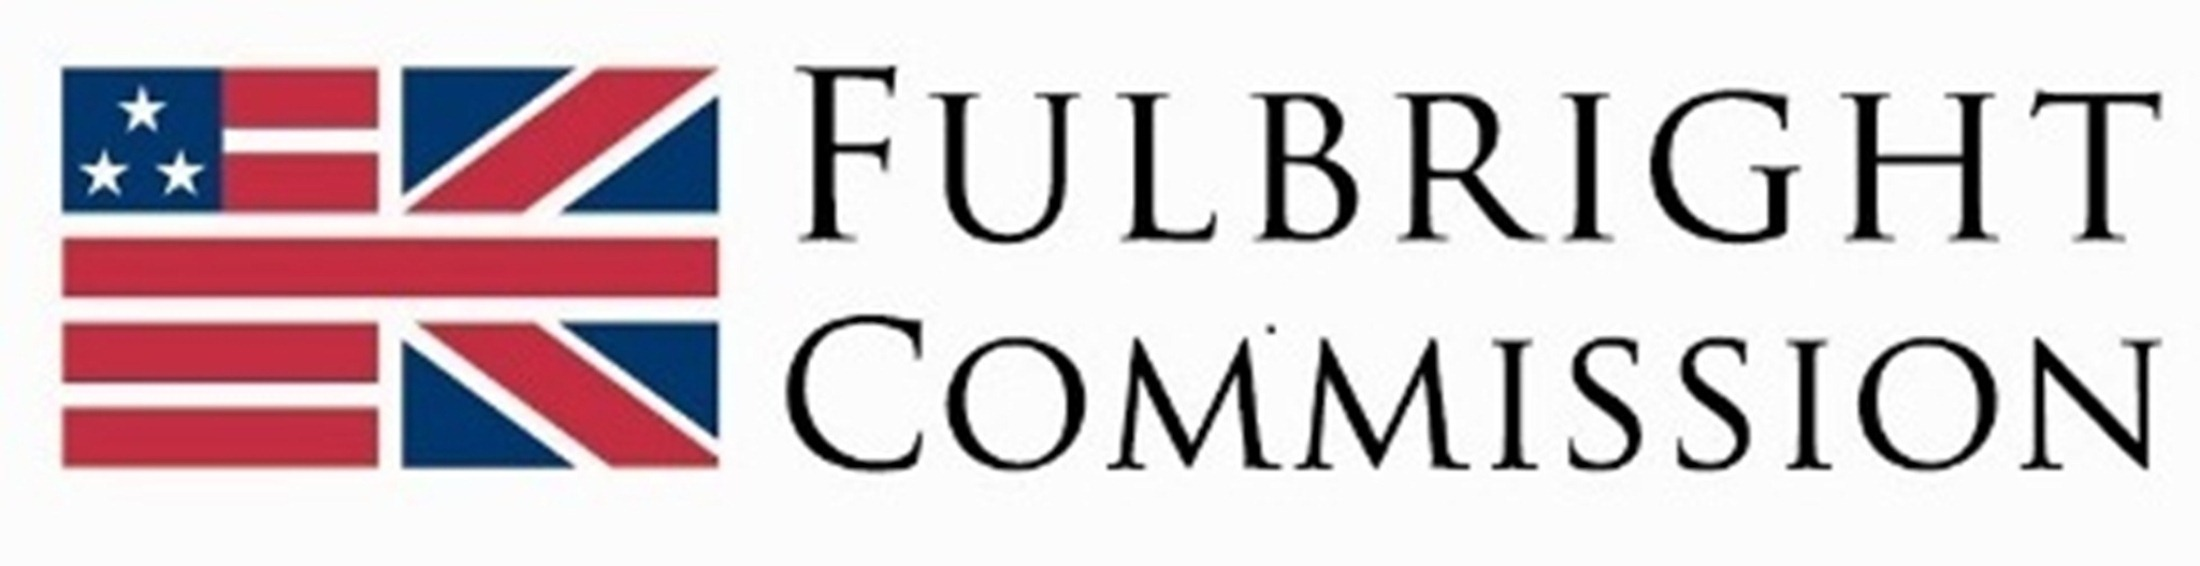 Spend a summer in the UK for FREE with Fulbright Commission